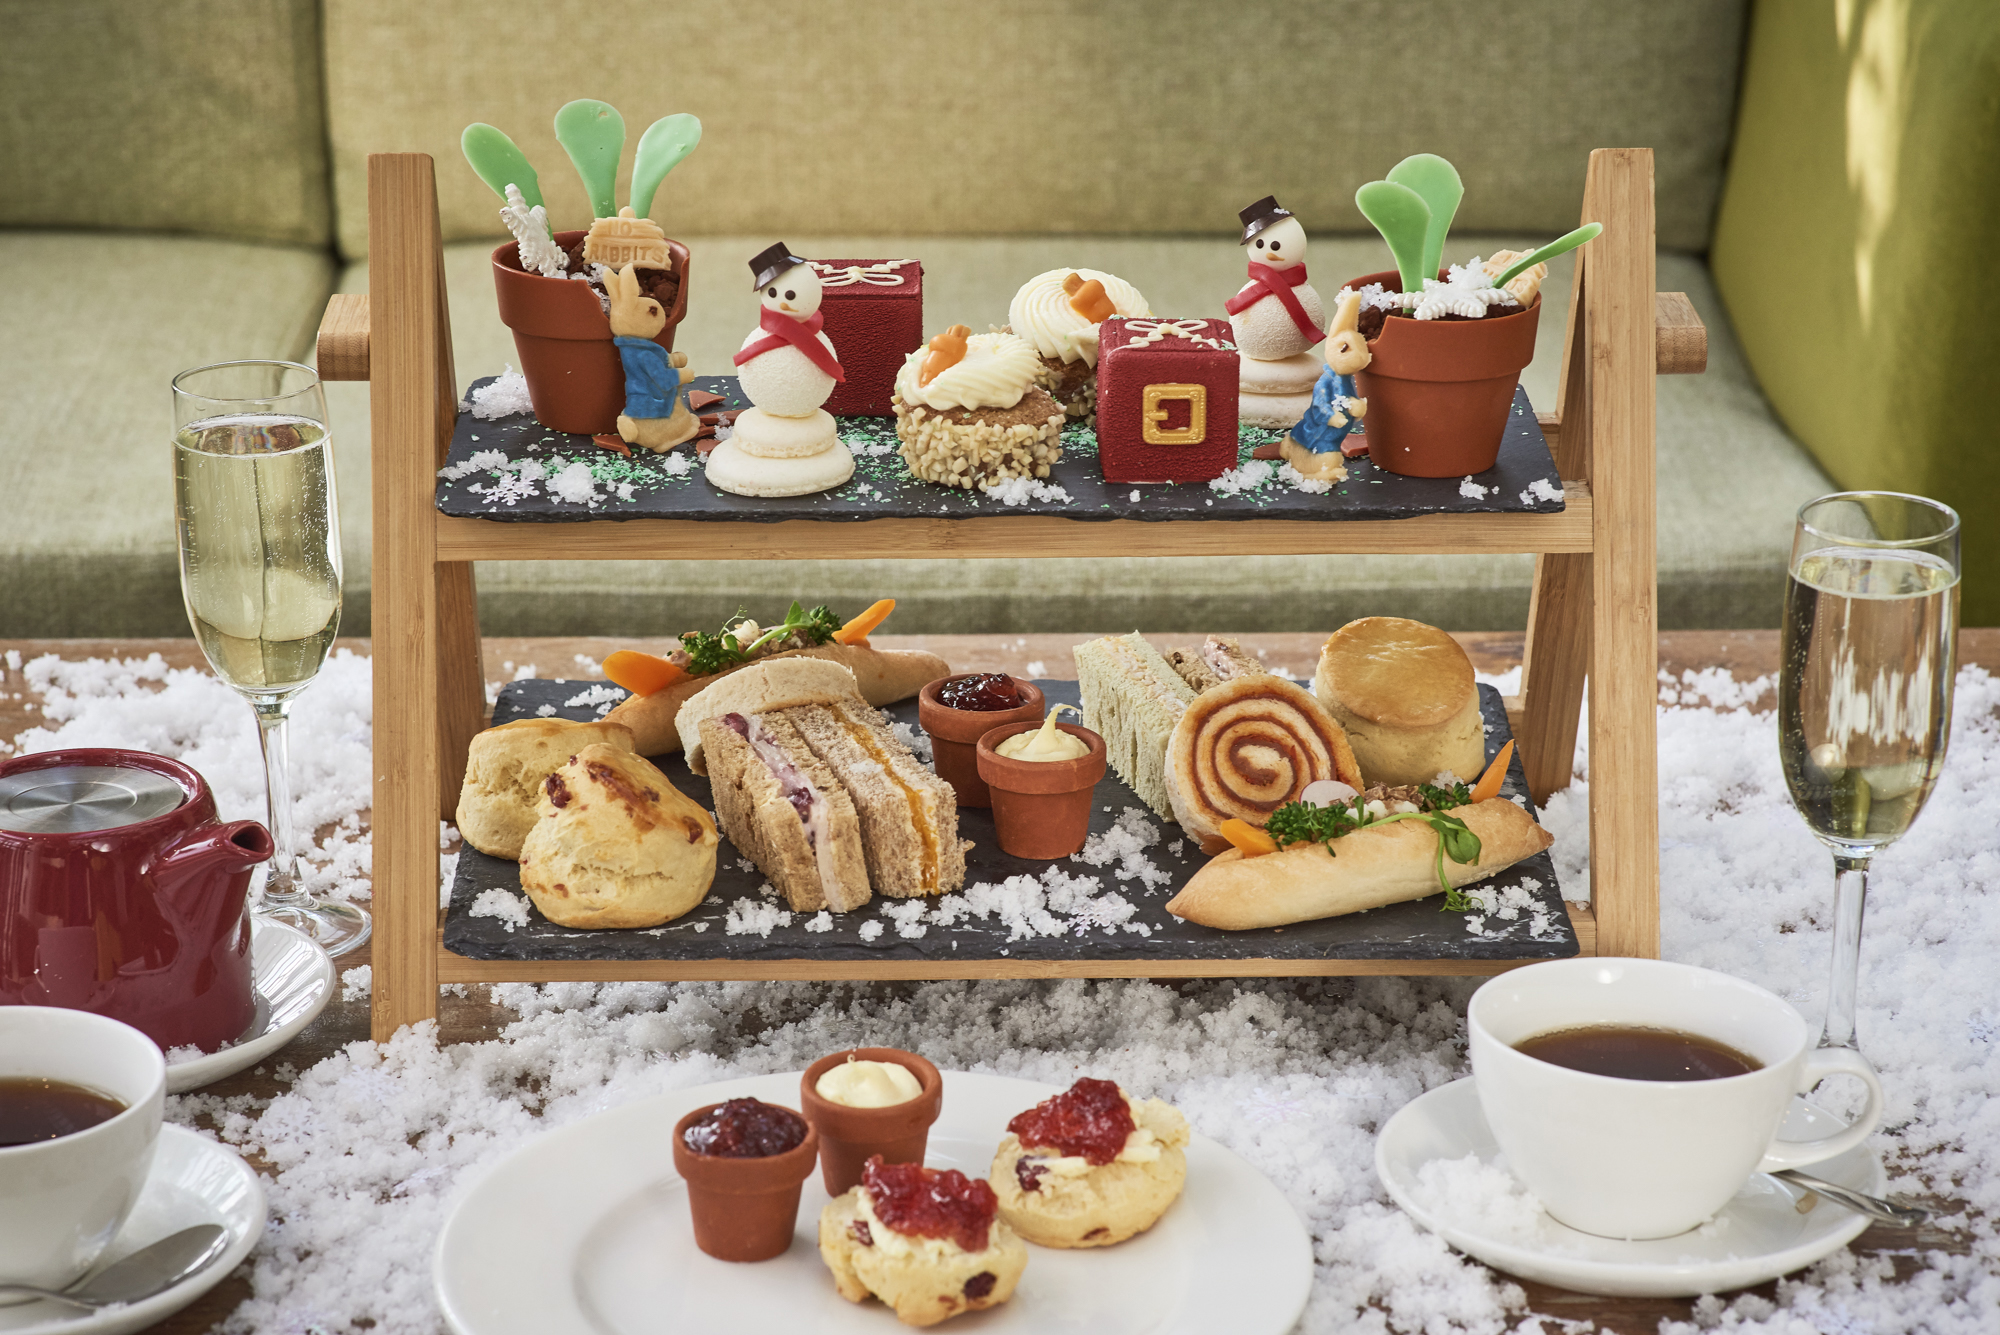 Image of Afternoon Tea at Le Méridien Piccadilly